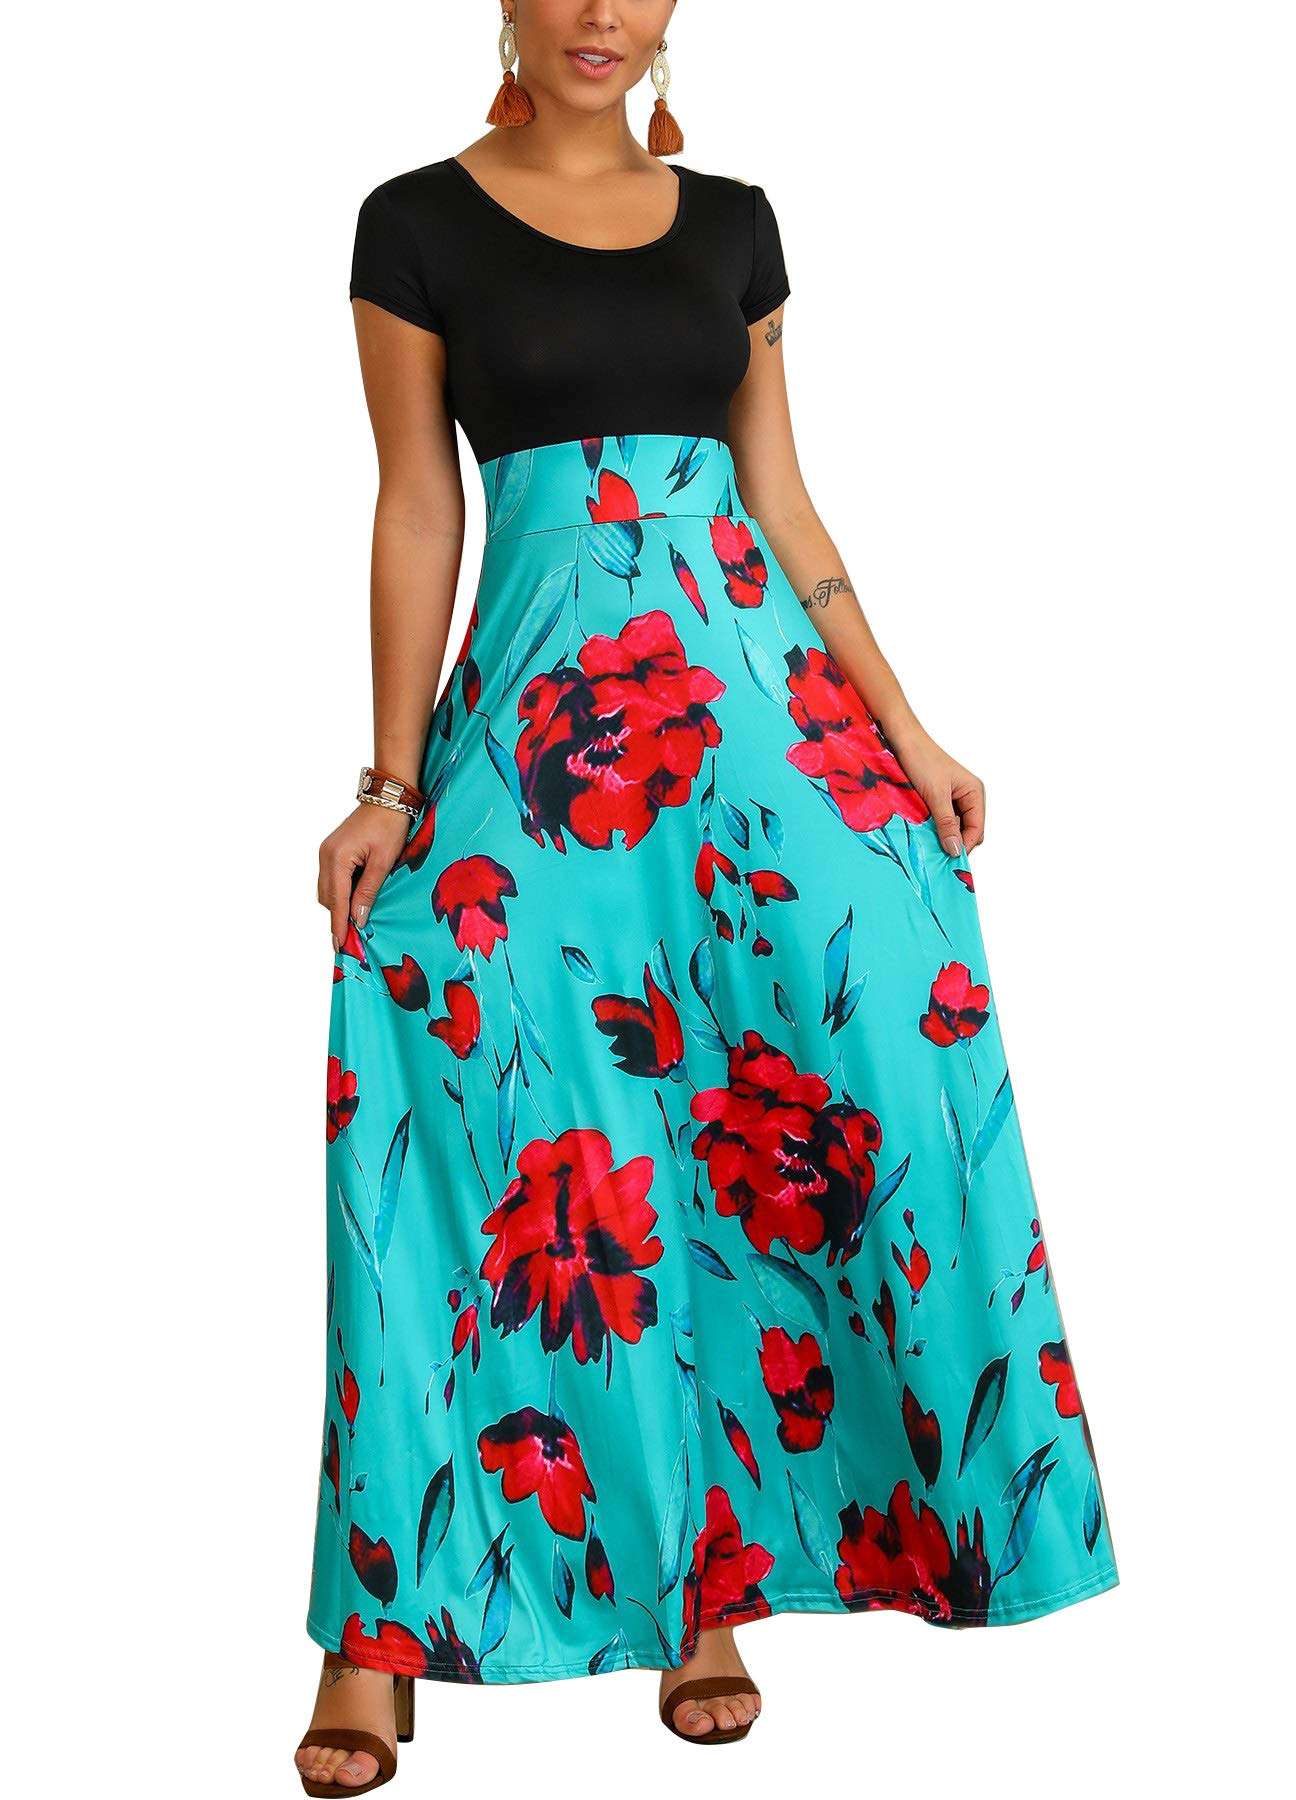 Available at Amazon: Women's Floral Maxi Dress with Pockets Modest Long Swing Dresses